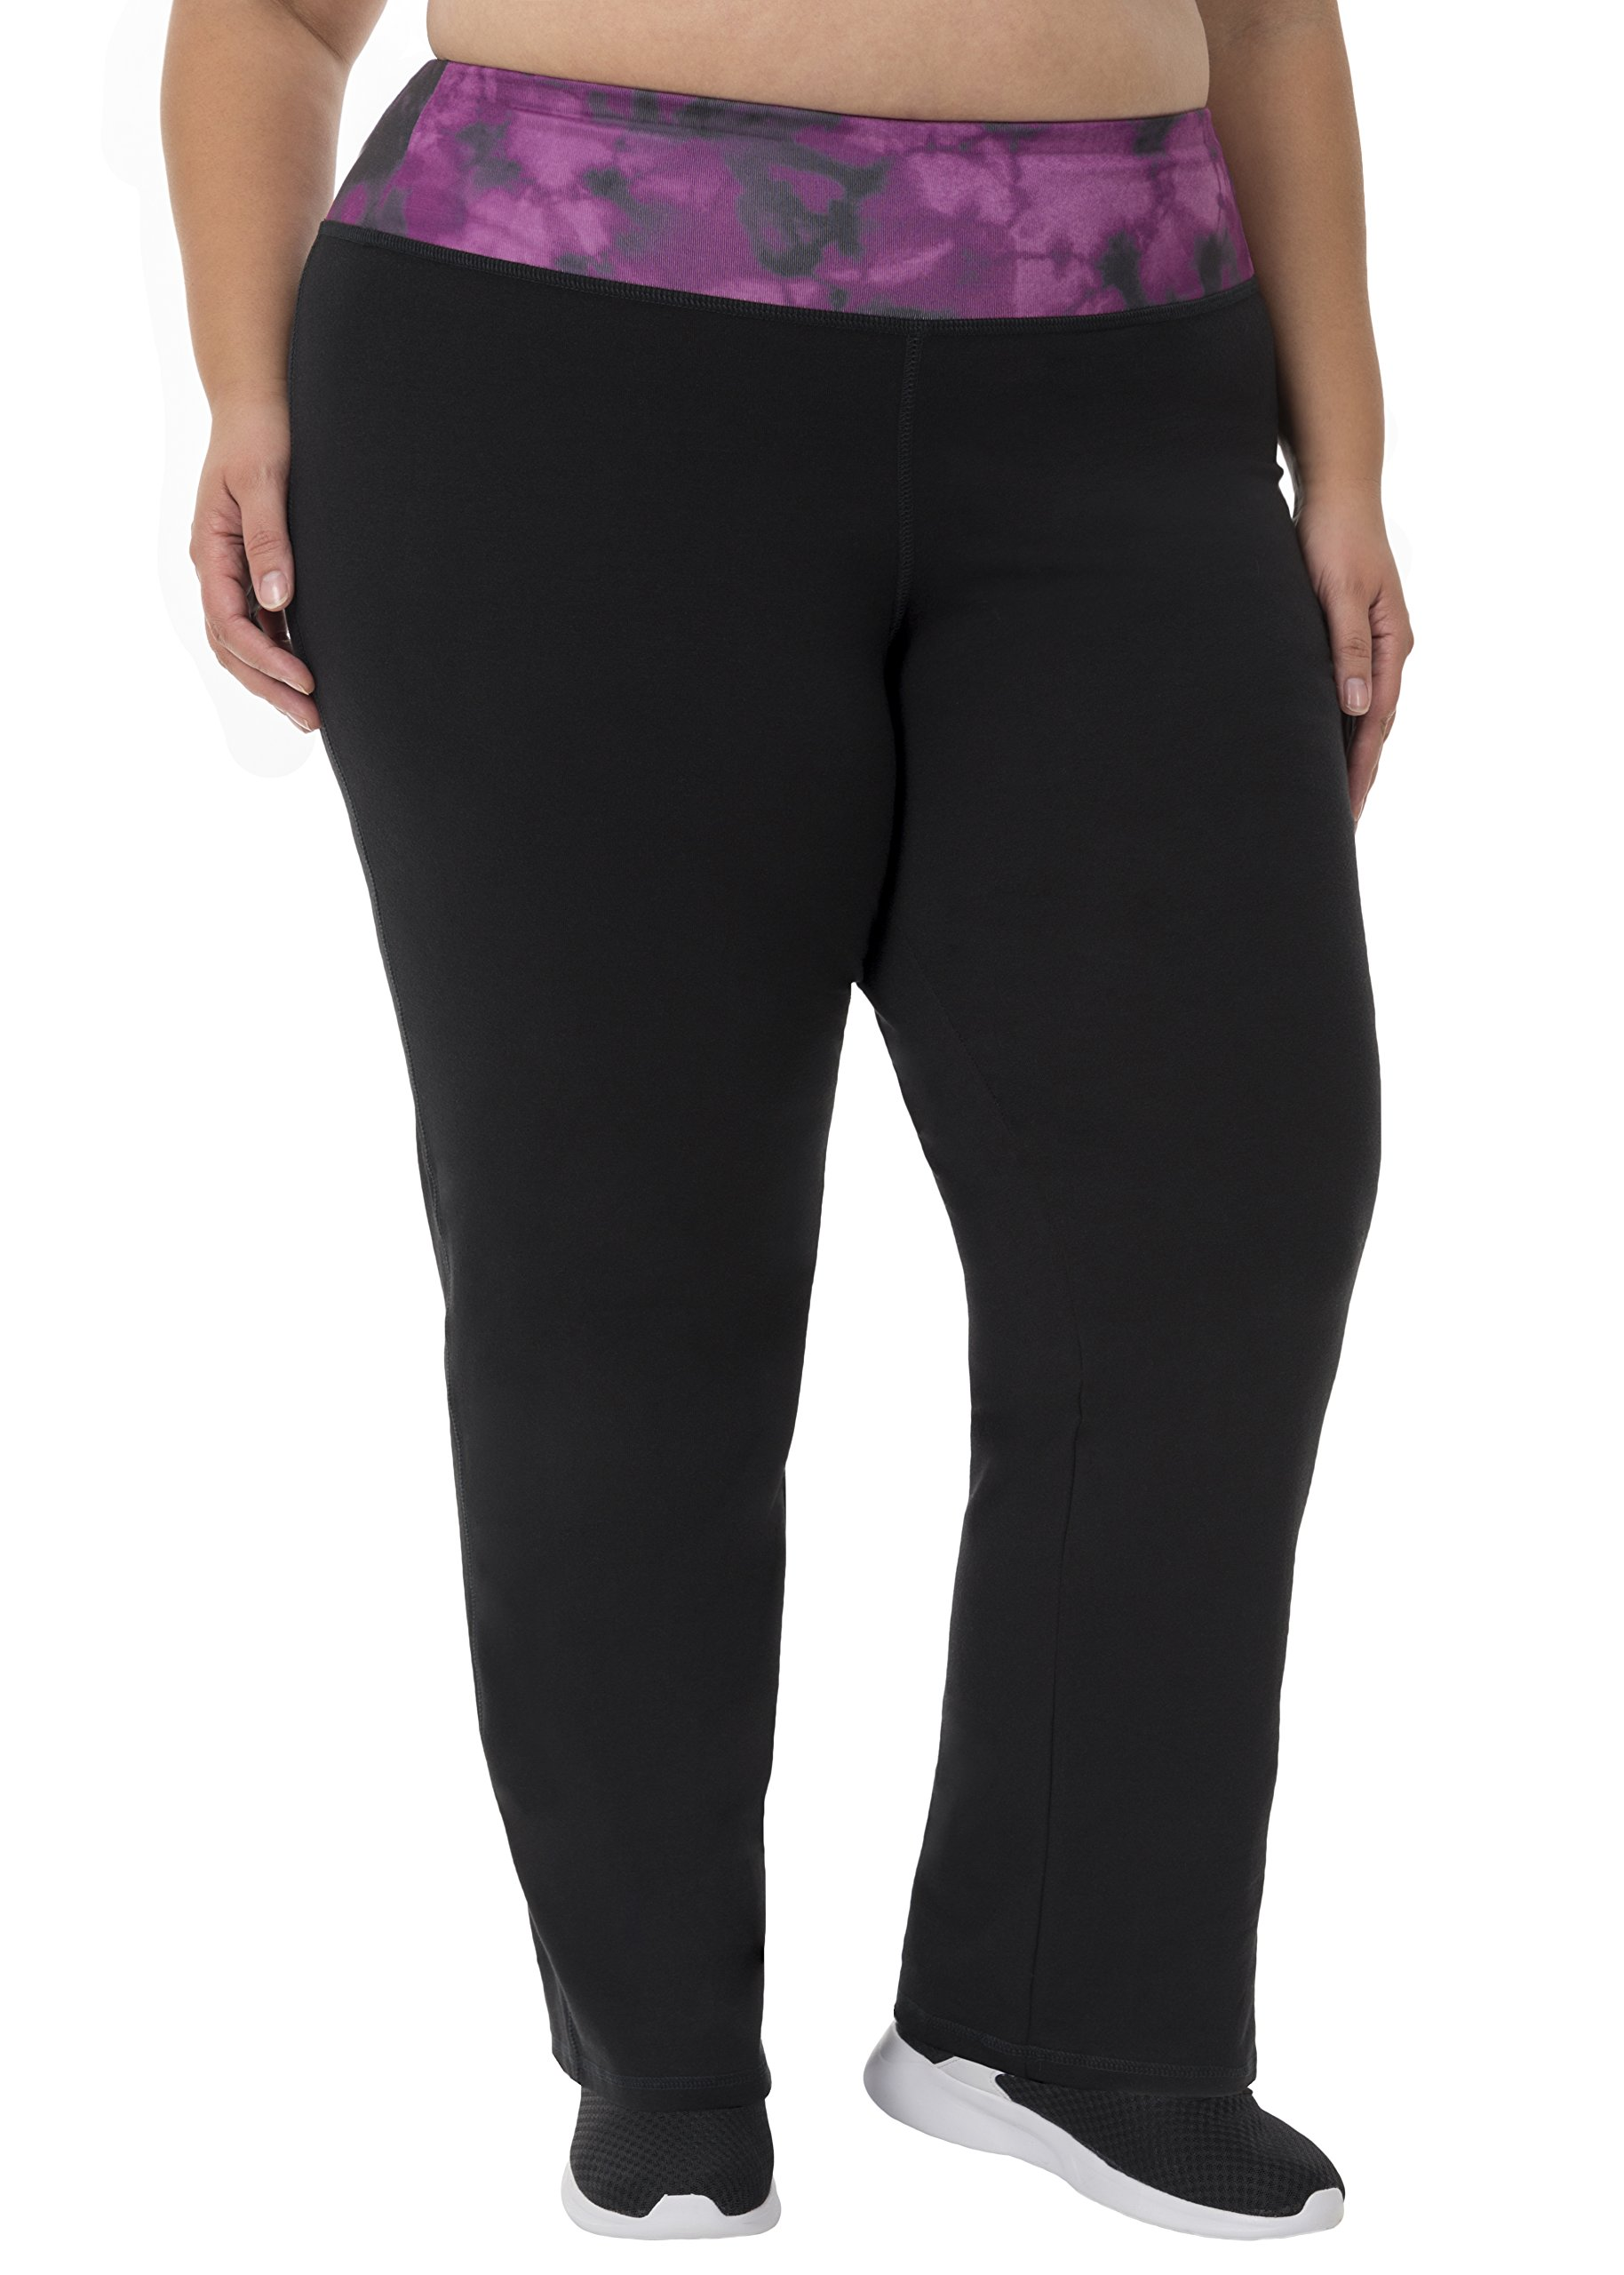 Fit for Me by Fruit of the Loom Women's Plus Size Relaxed Fit Yoga Pant, Black/Deep Plum Cloud, 2X by Fit for Me by Fruit of the Loom (Image #1)